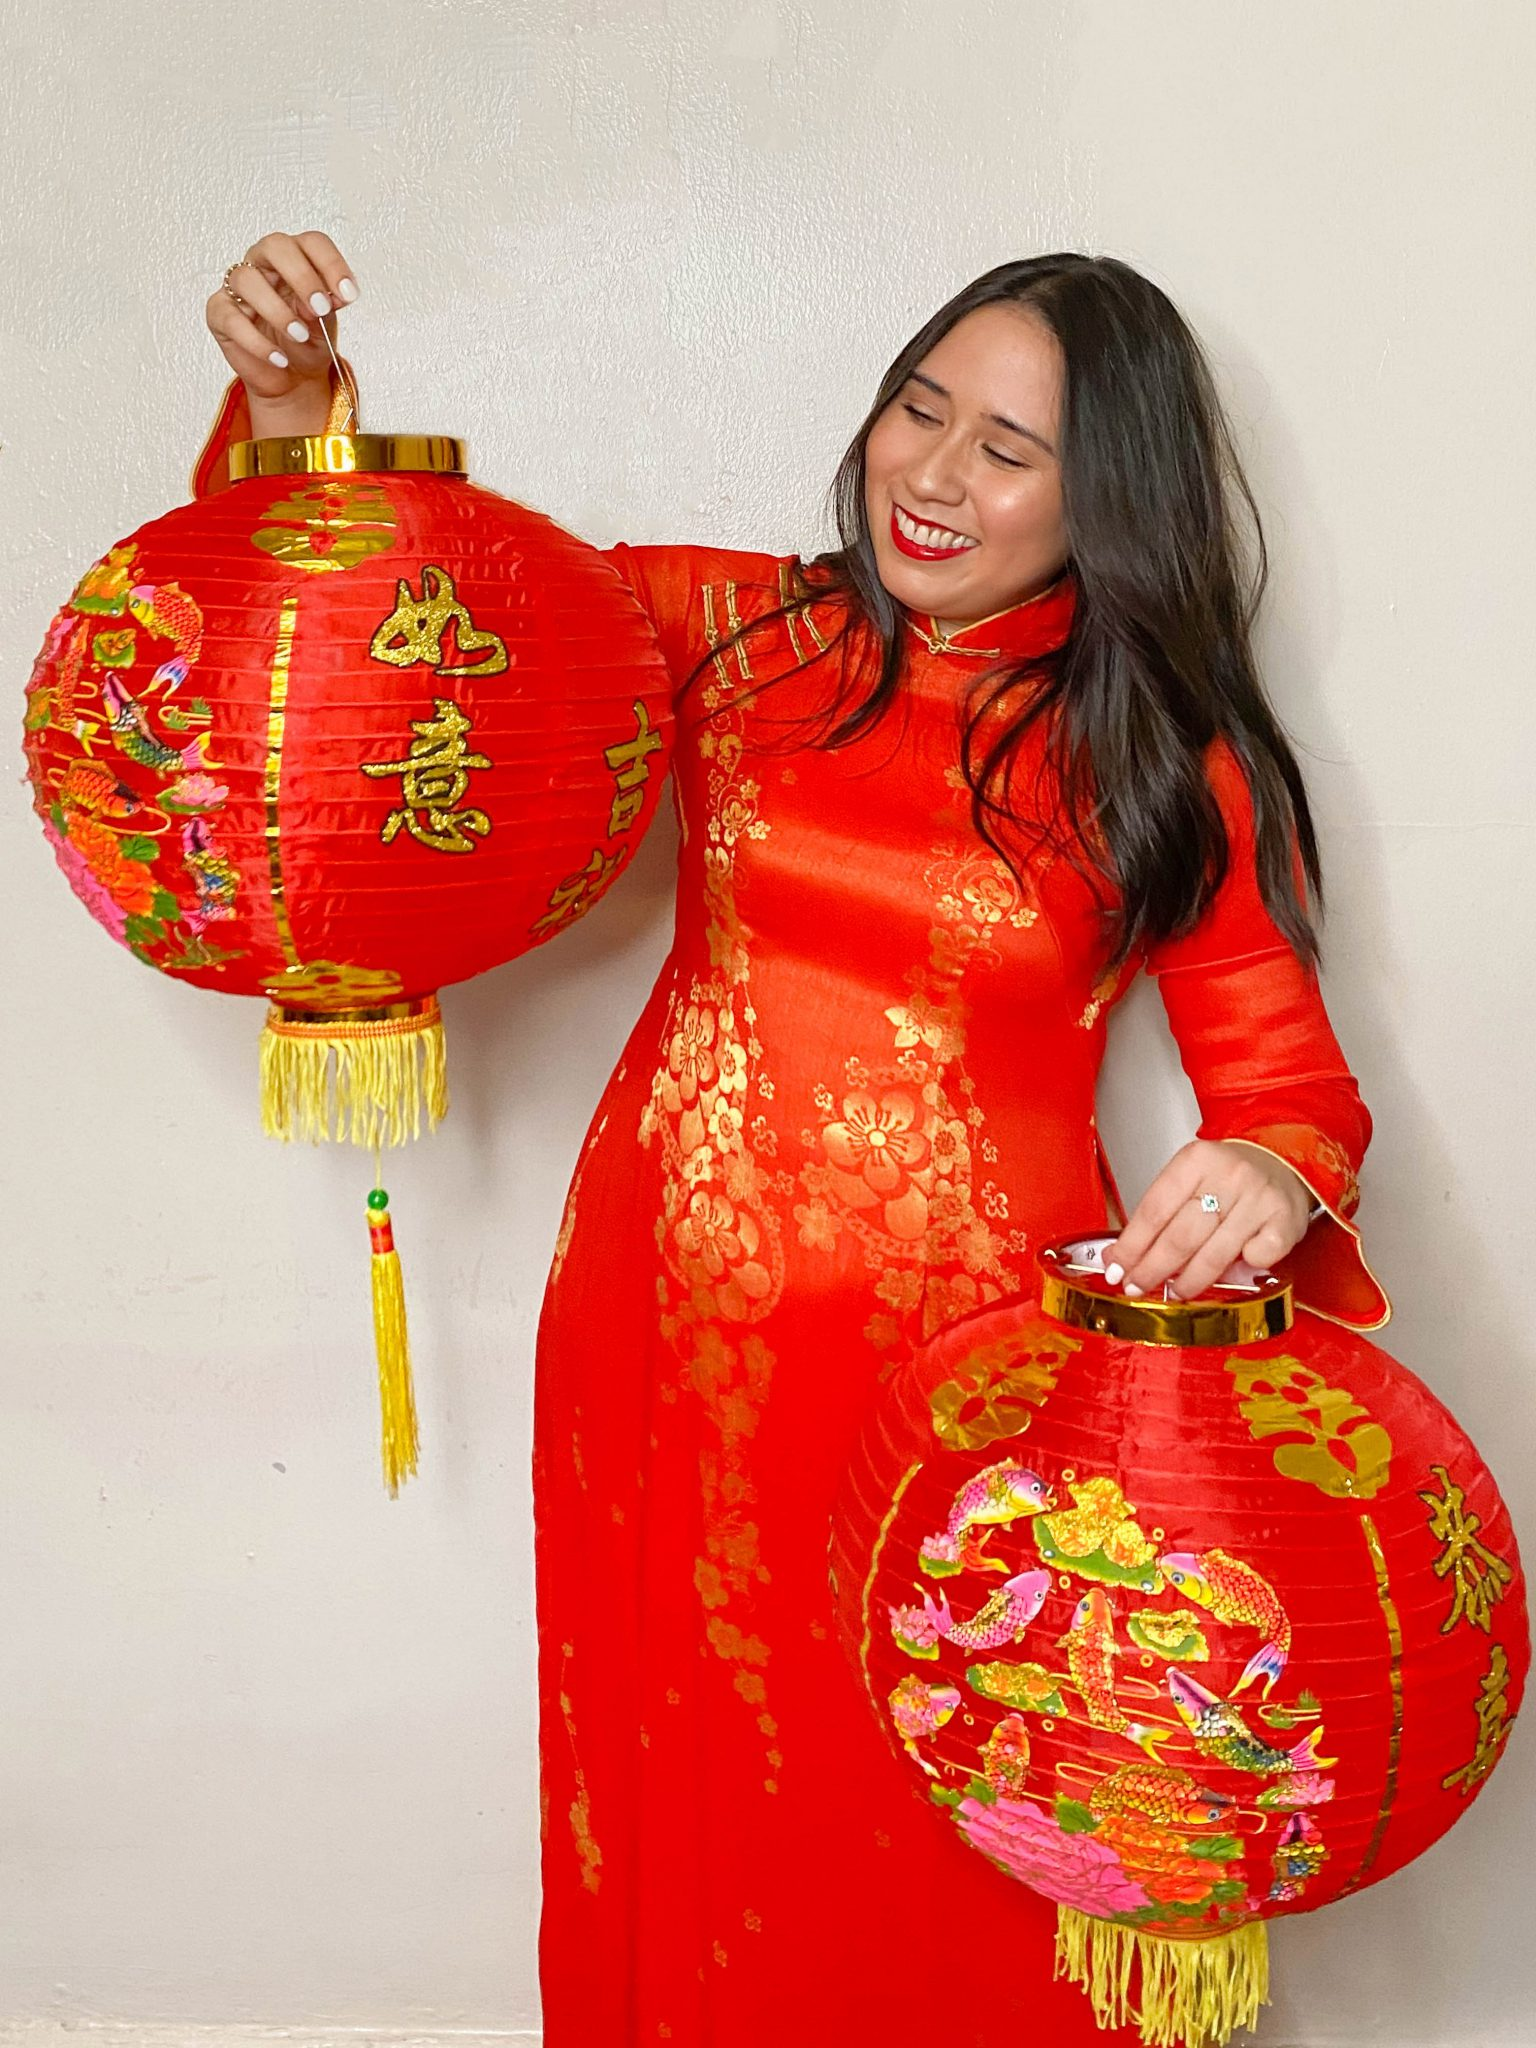 Happy Lunar New Year - Year of the Ox by Basically A Mess (photo of woman in traditional Vietnamese ao dai and red lanterns)